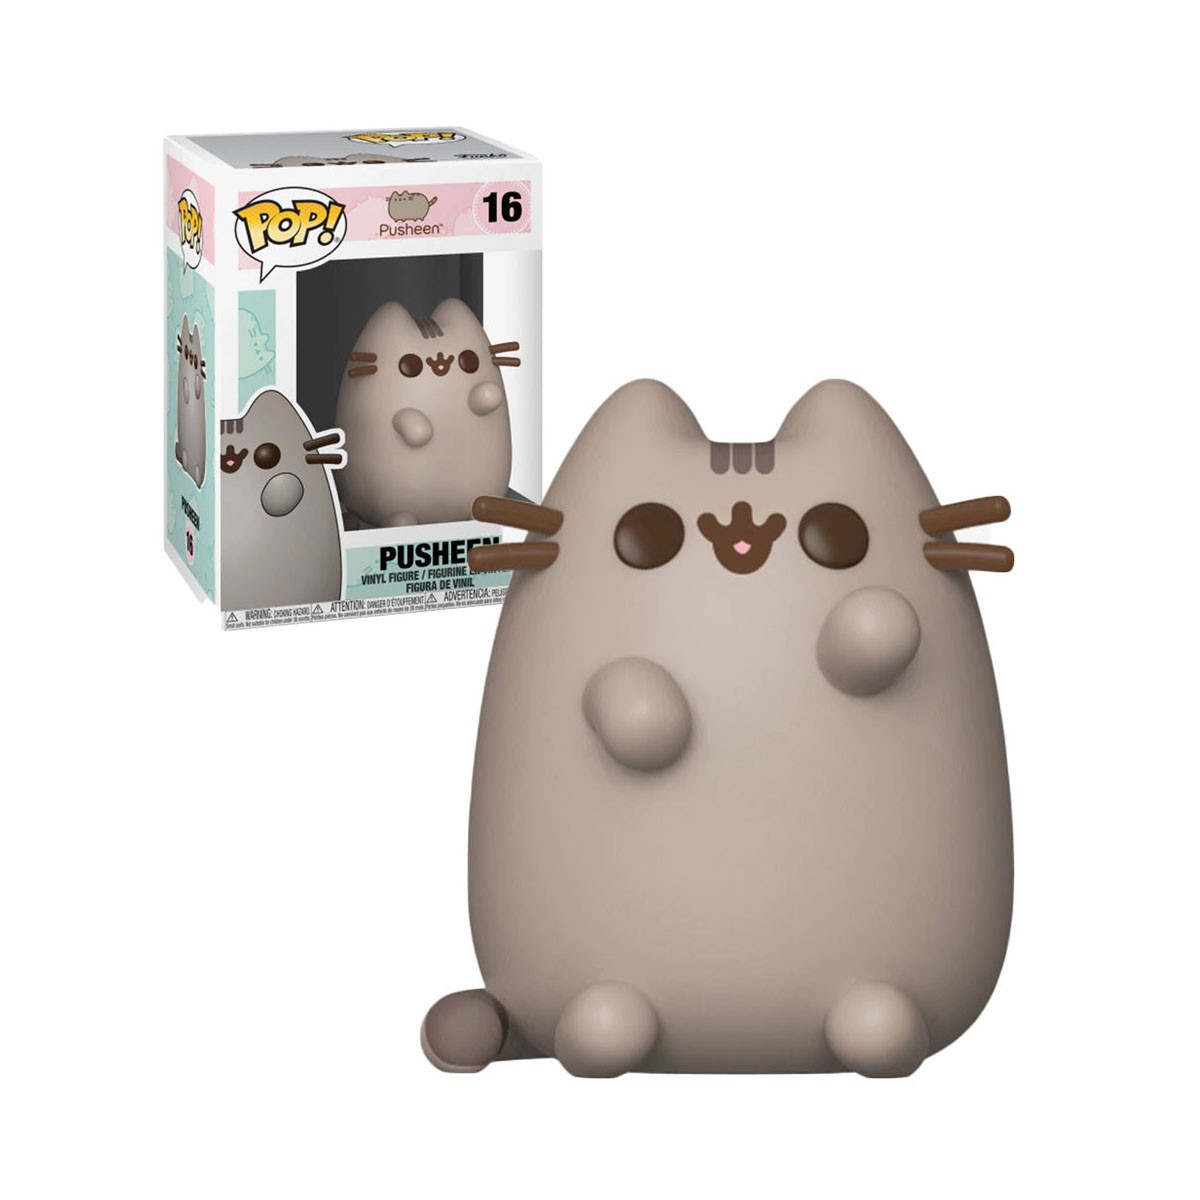 Funko Pop Pusheen 16